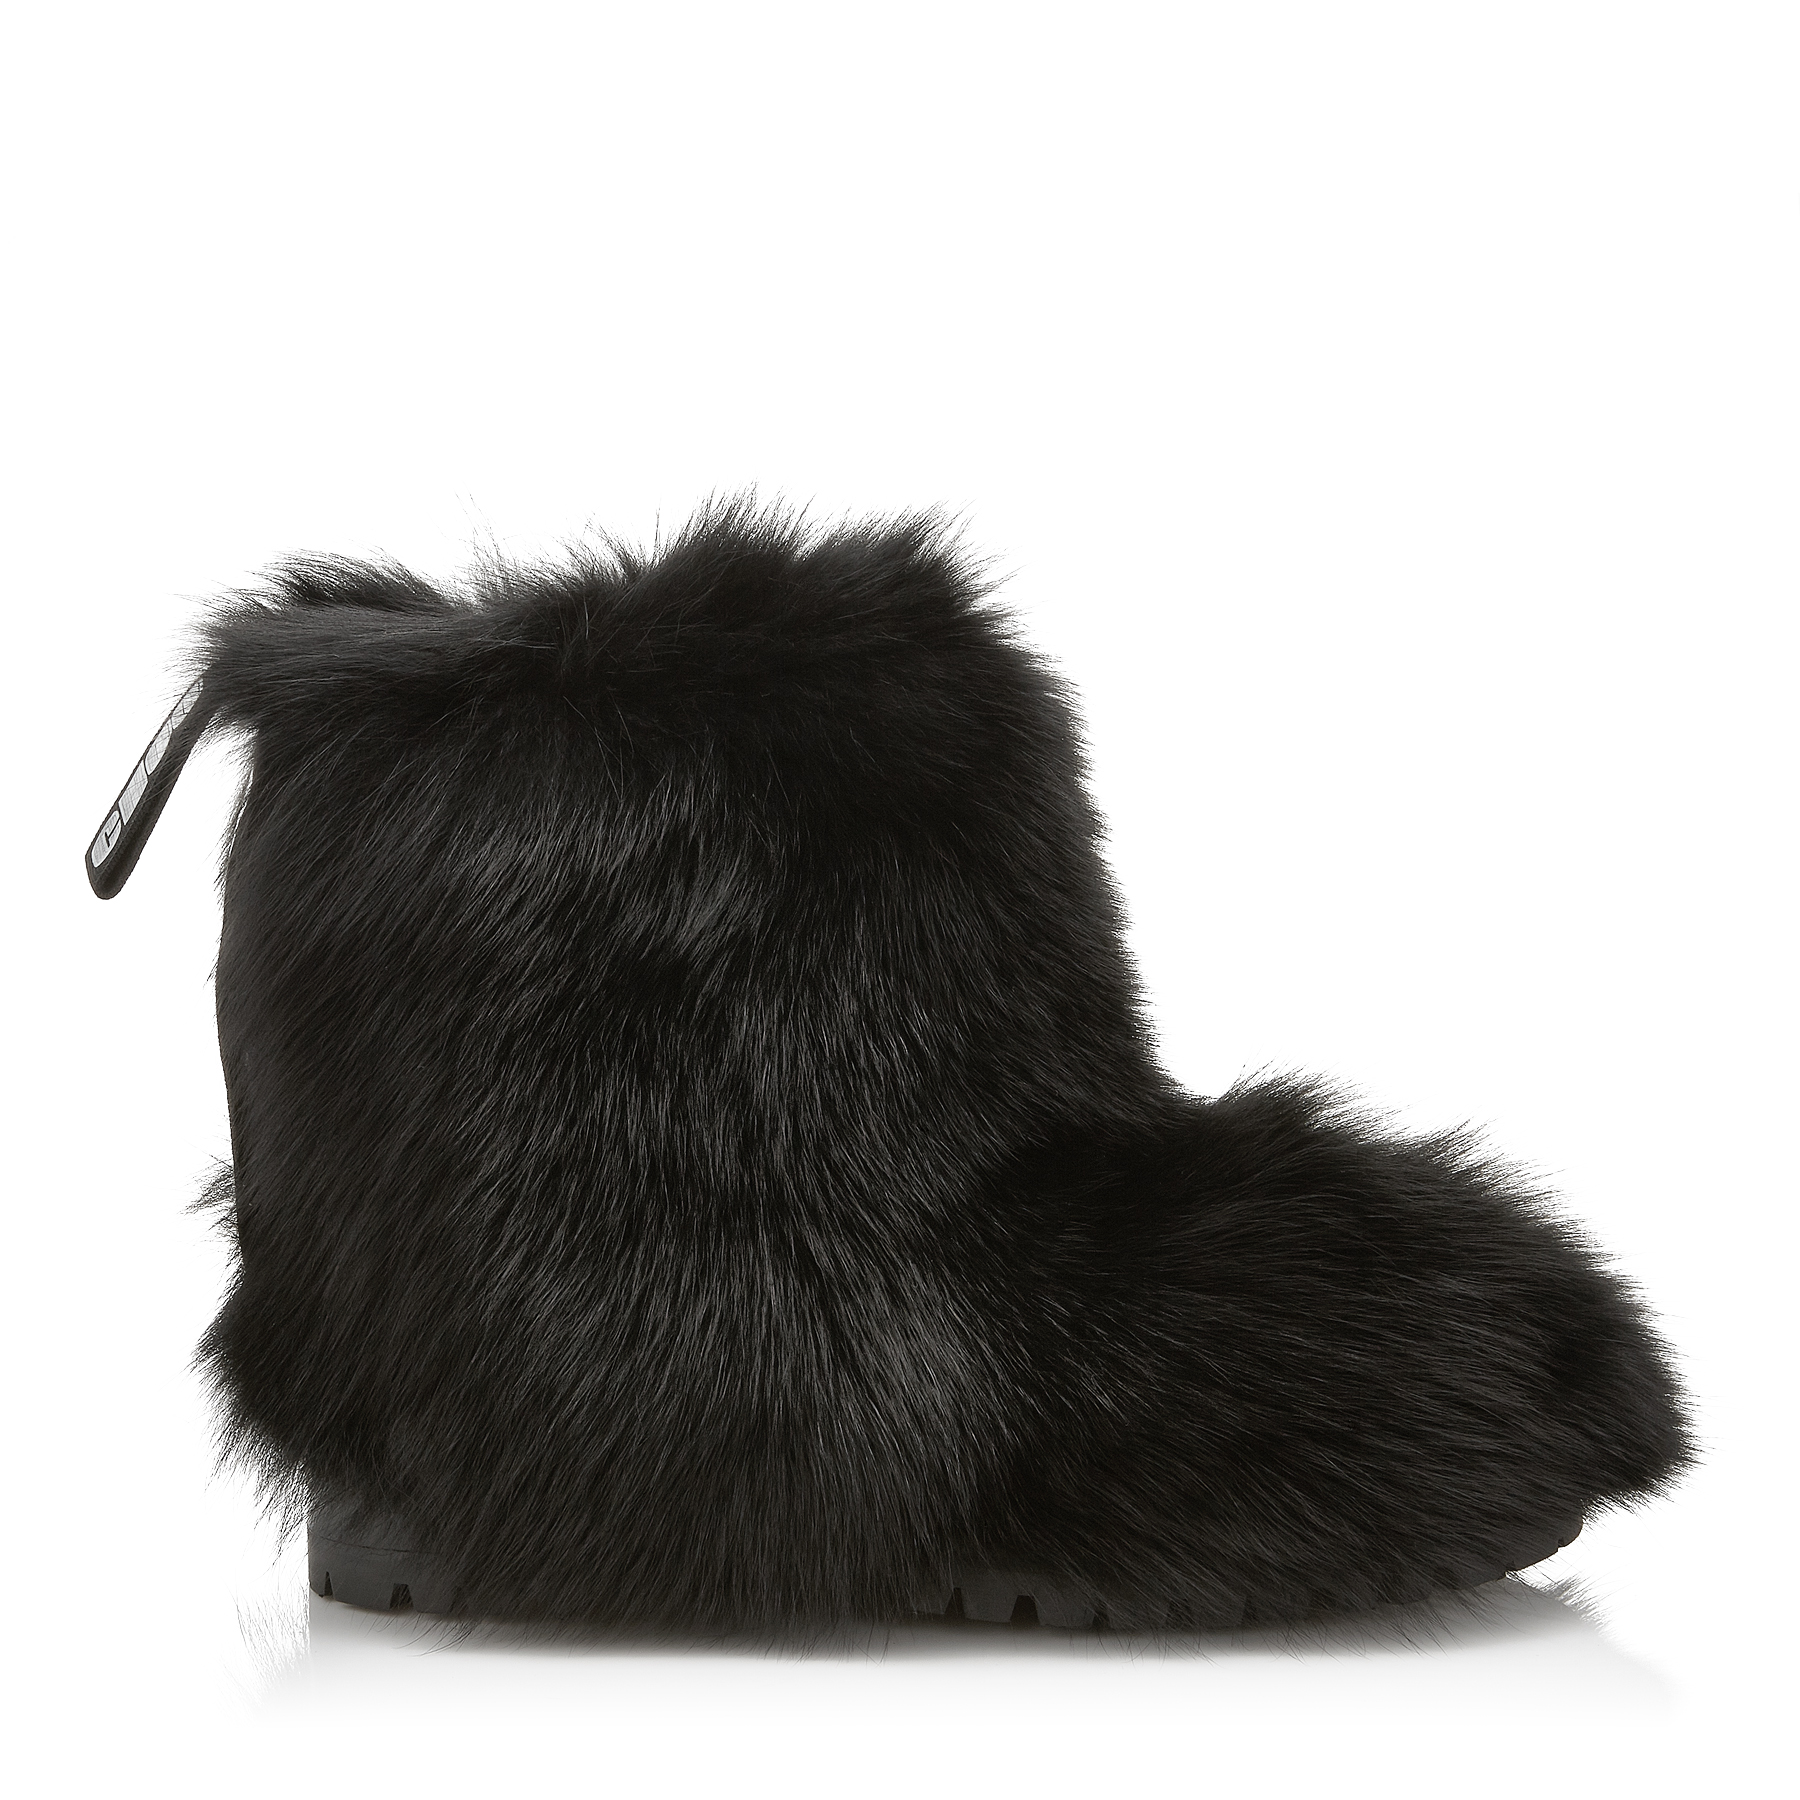 DALTON FLAT Black Fox Fur Boots with Rabbit Fur Lining by Jimmy Choo